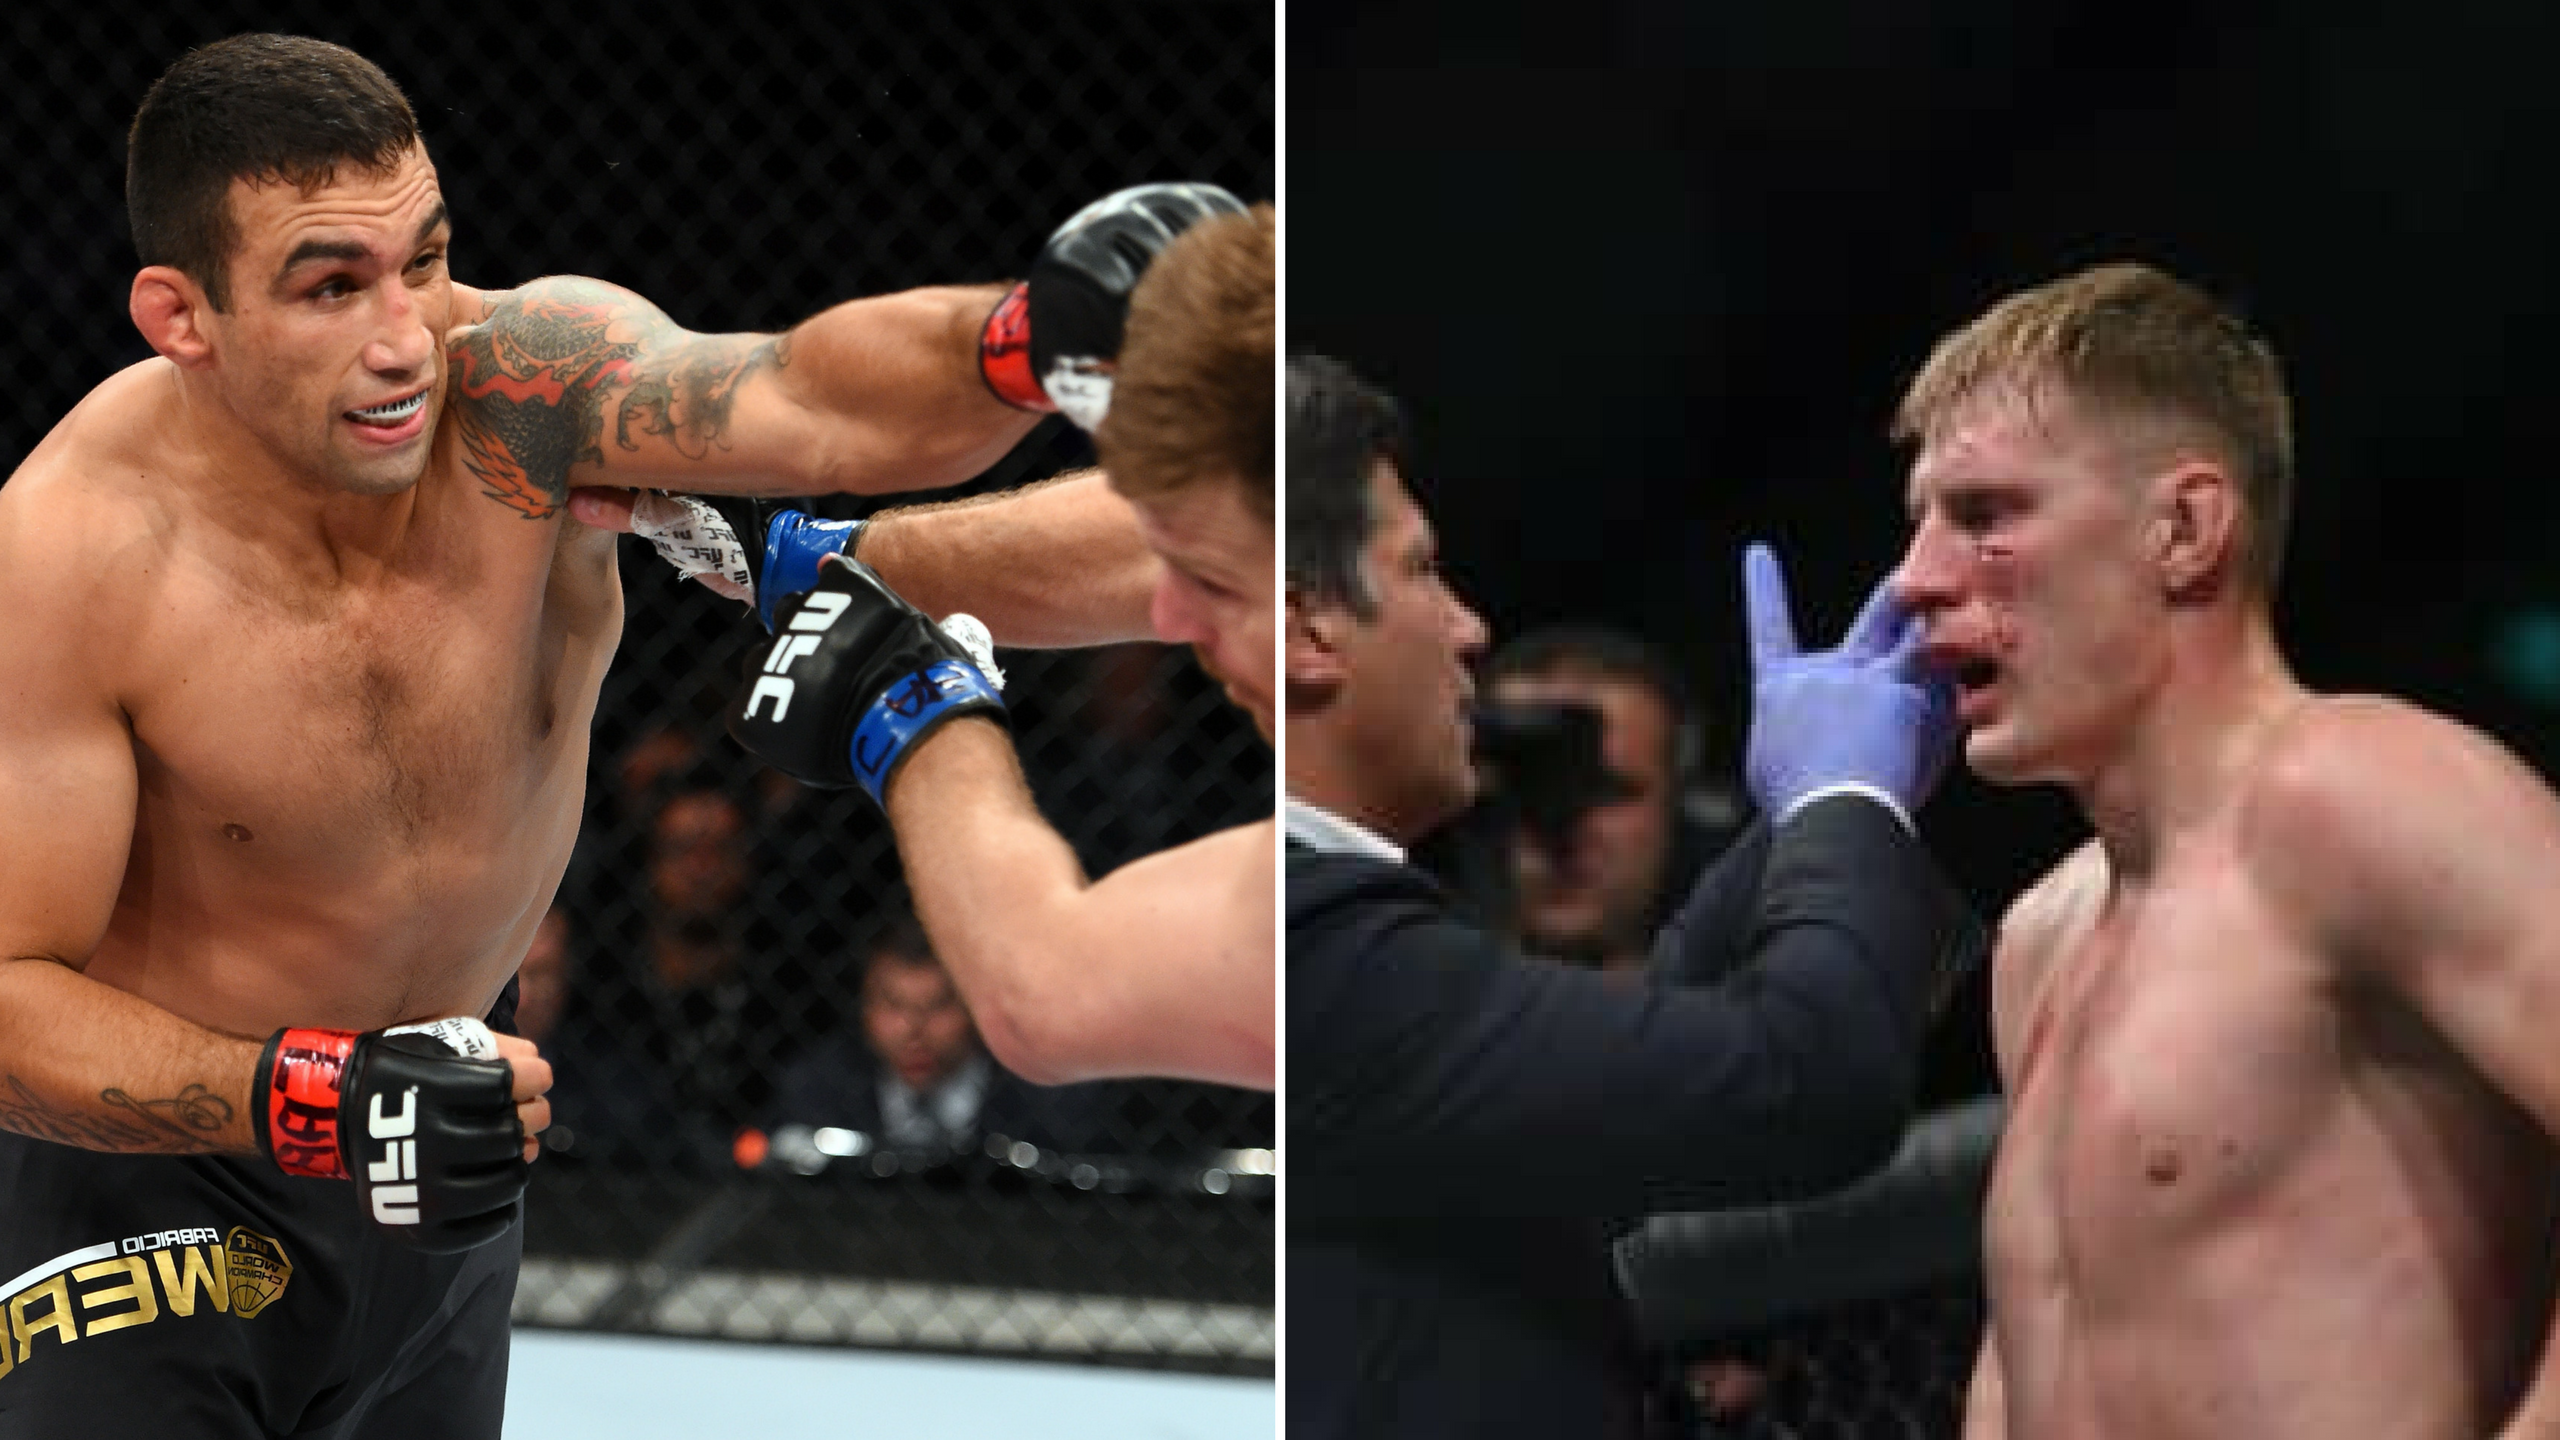 It's Werdum vs Volkov as the main event for UFC London -